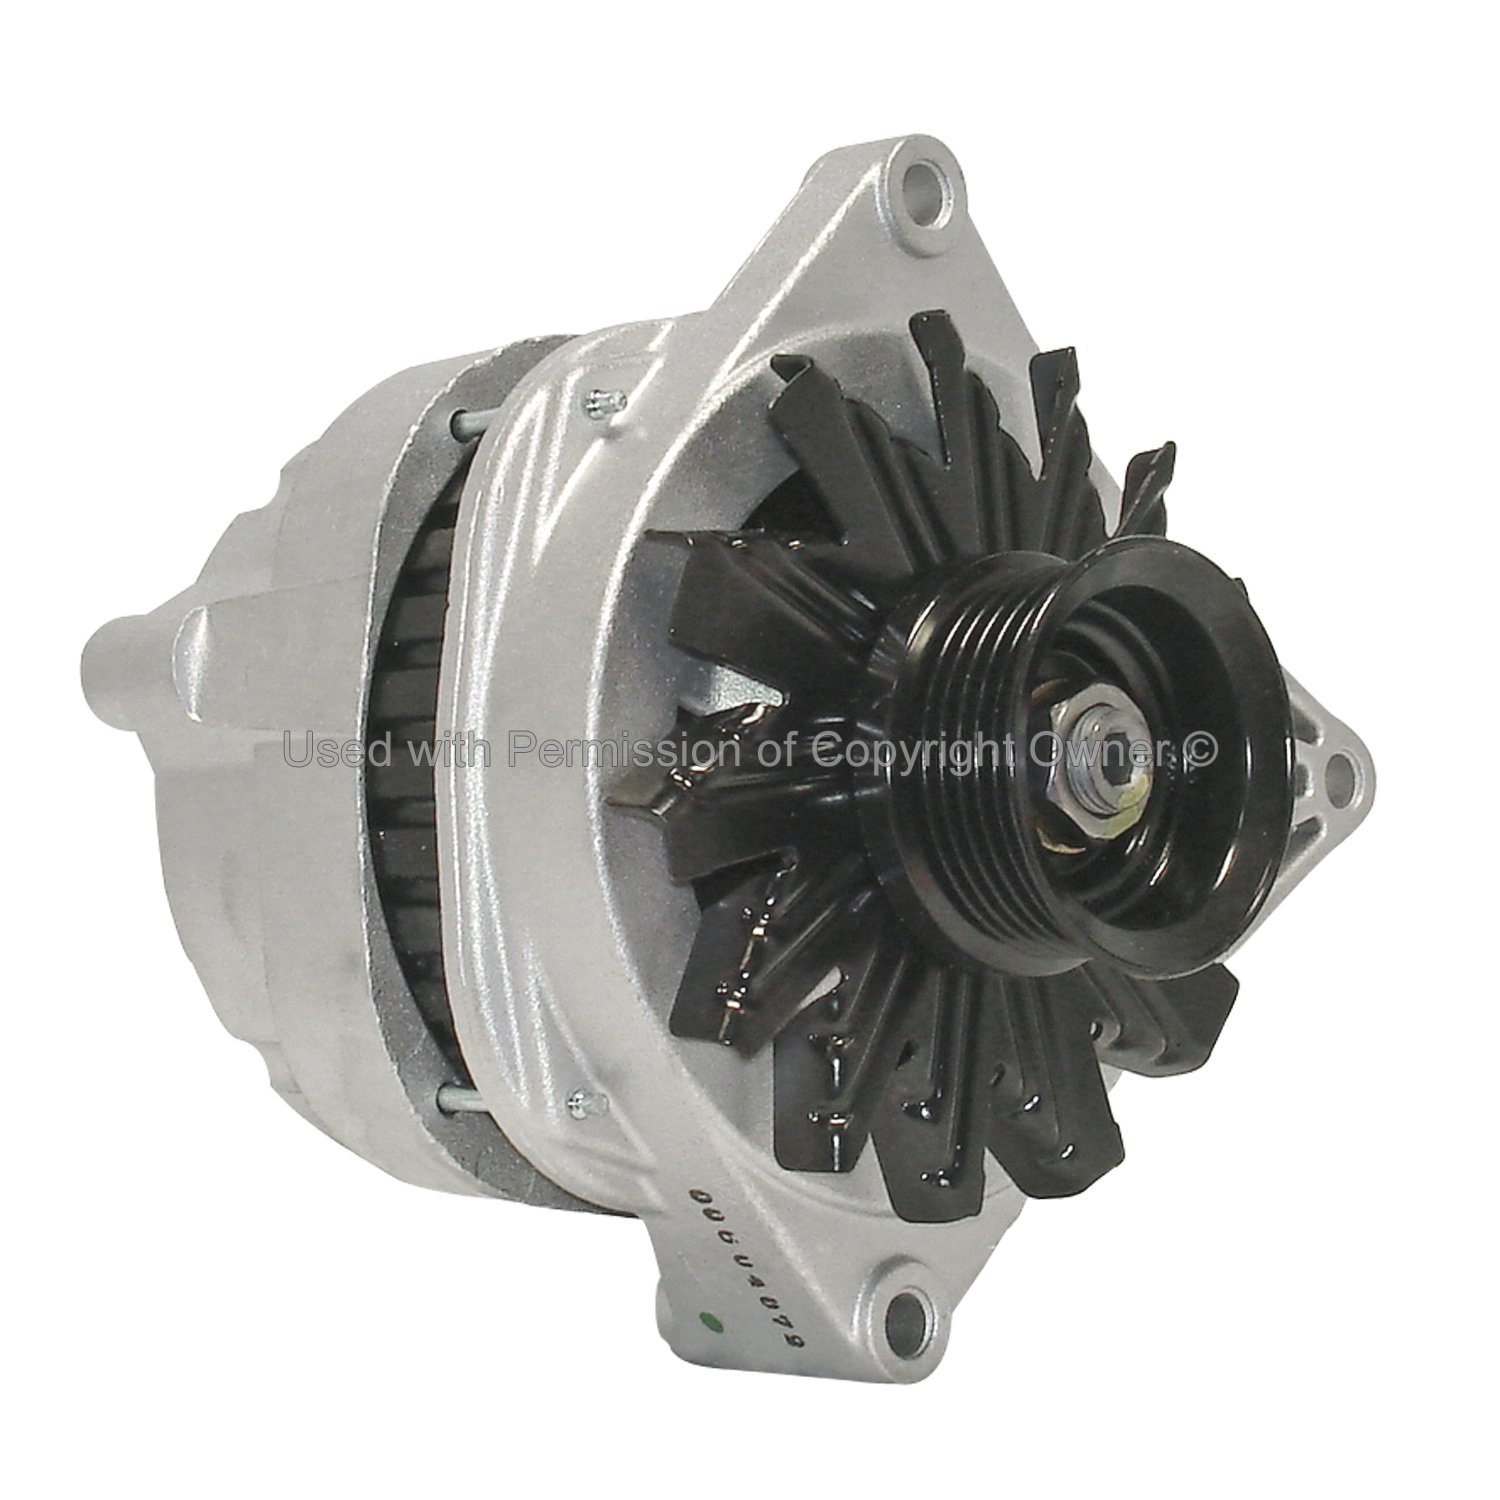 hight resolution of 1998 buick lesabre alternator ma 8213607n